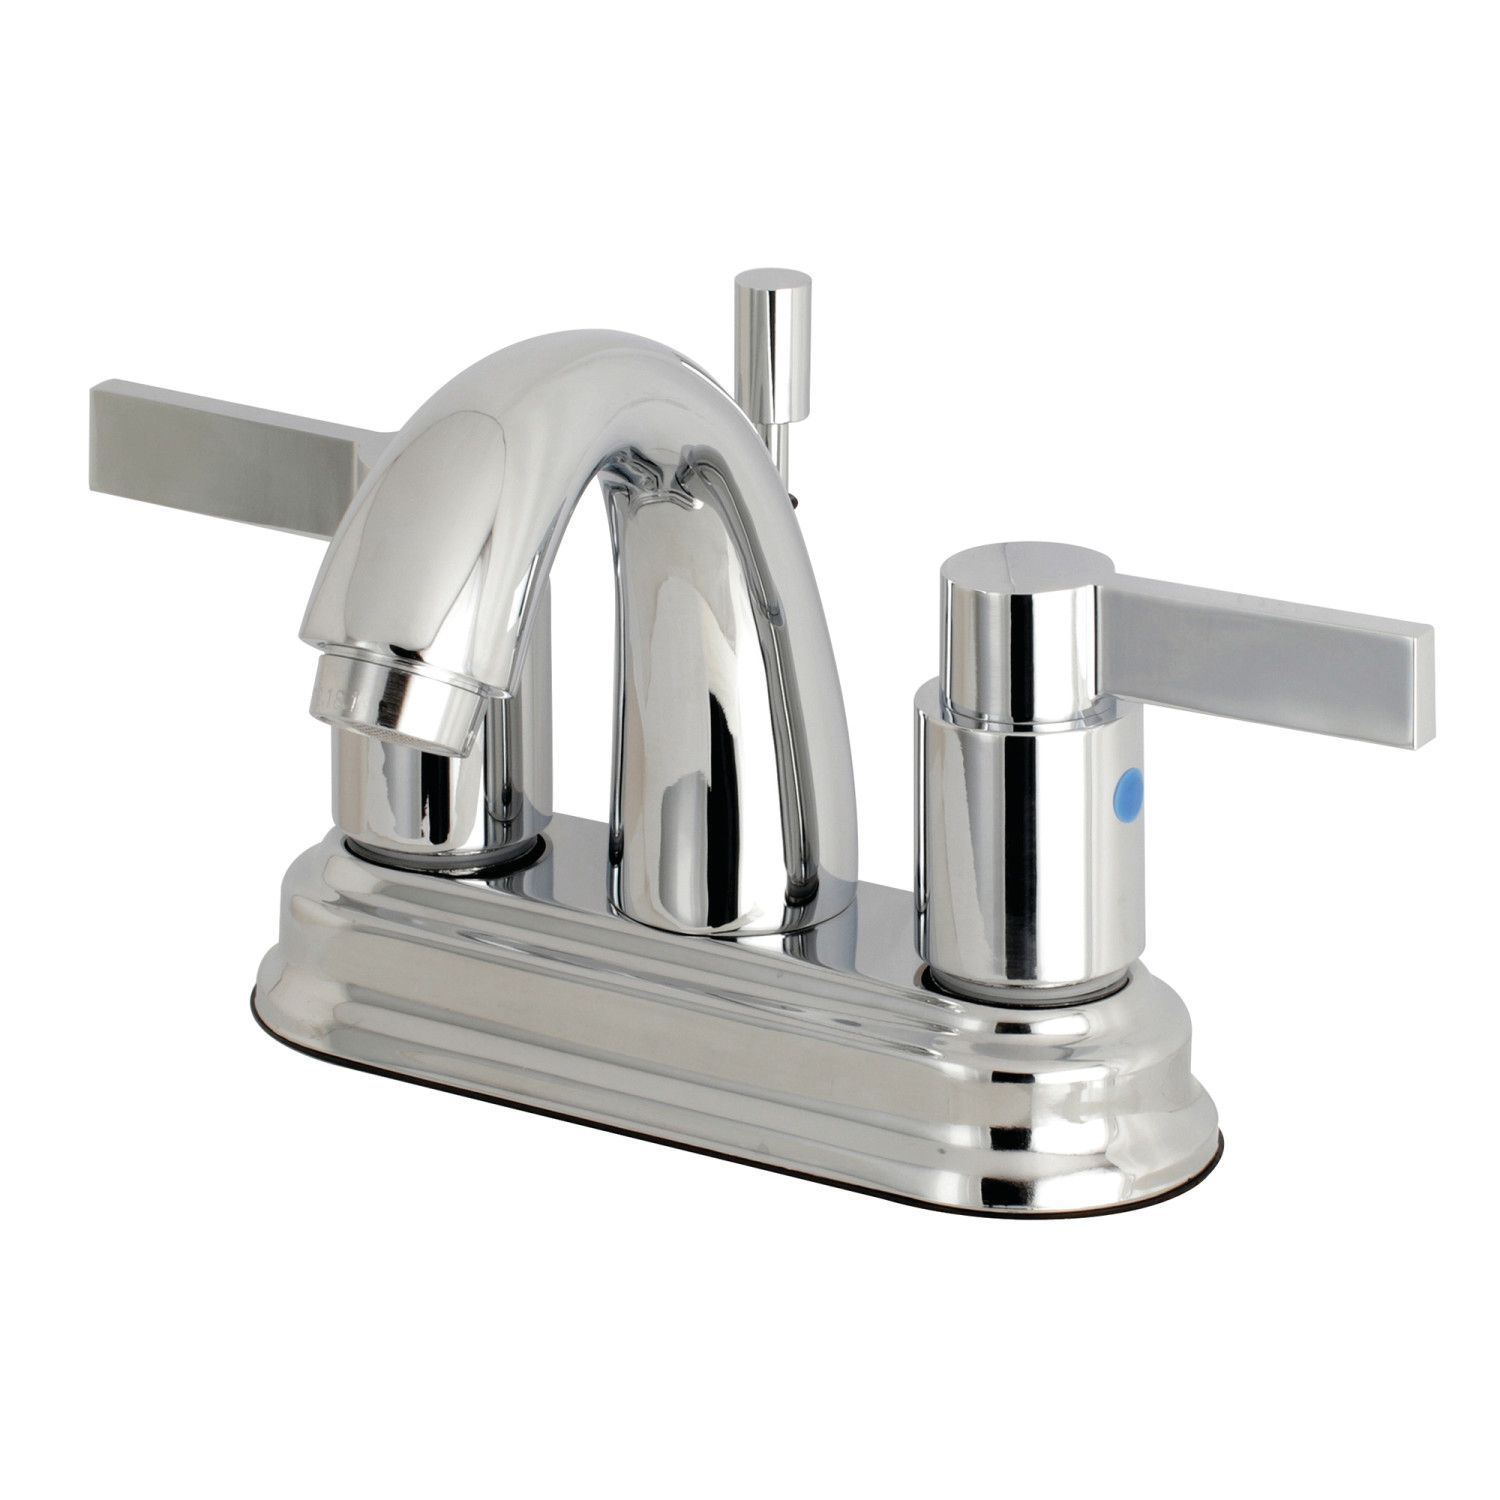 FB5611NDL 4-Inch Centerset Lavatory Faucet, Polished Chrome ...